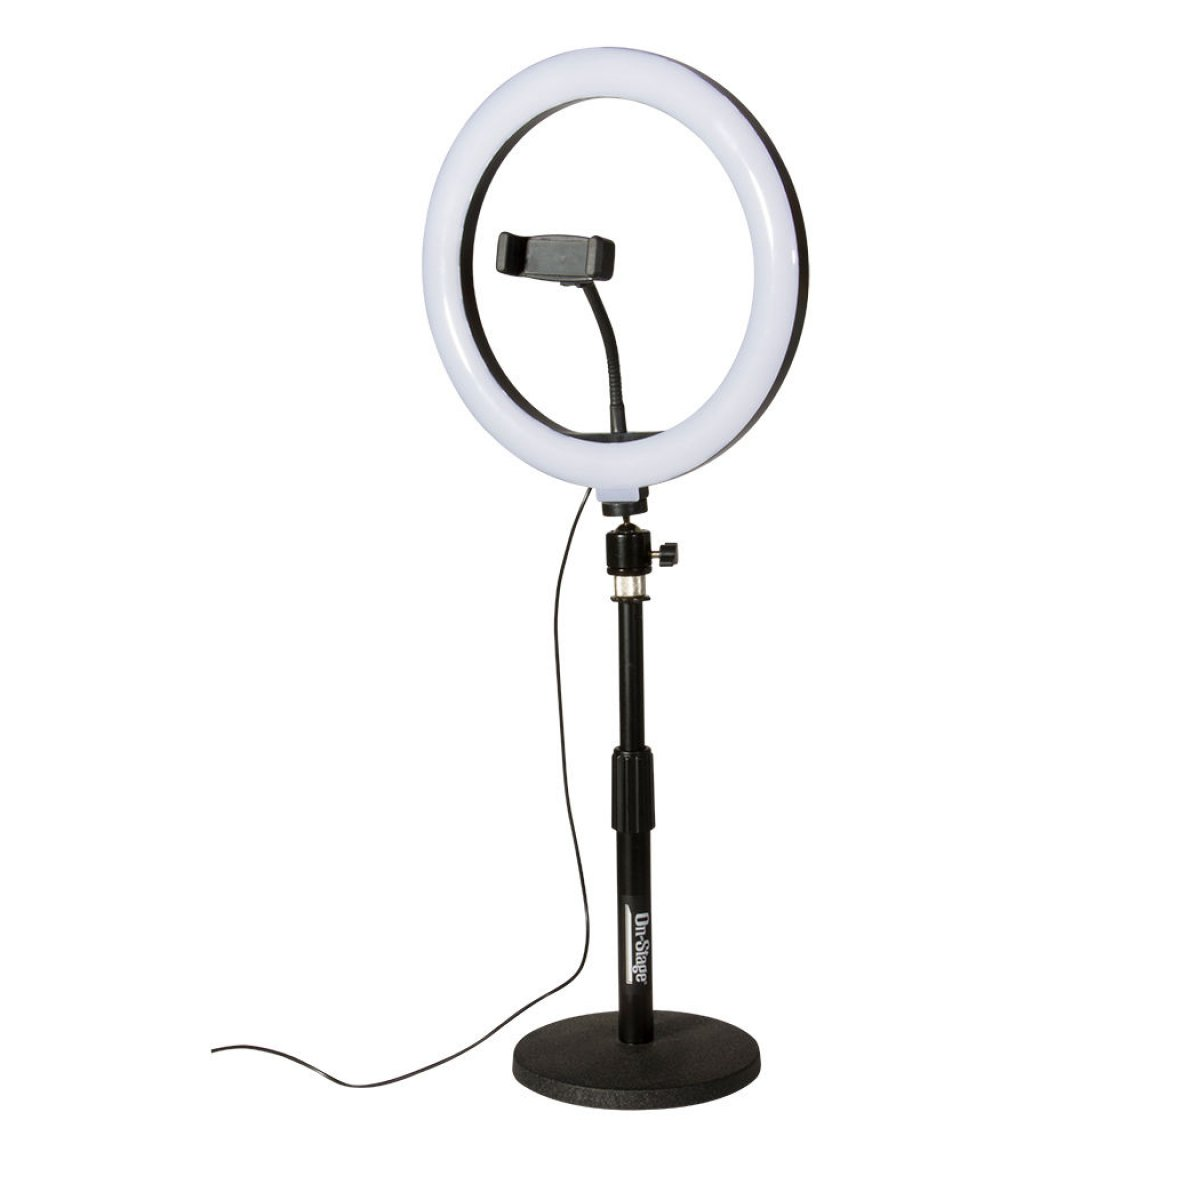 OnStage VLD360 LED RING LIGHT KIT: 10, CLAMP, REMOTE, 2 STANDS